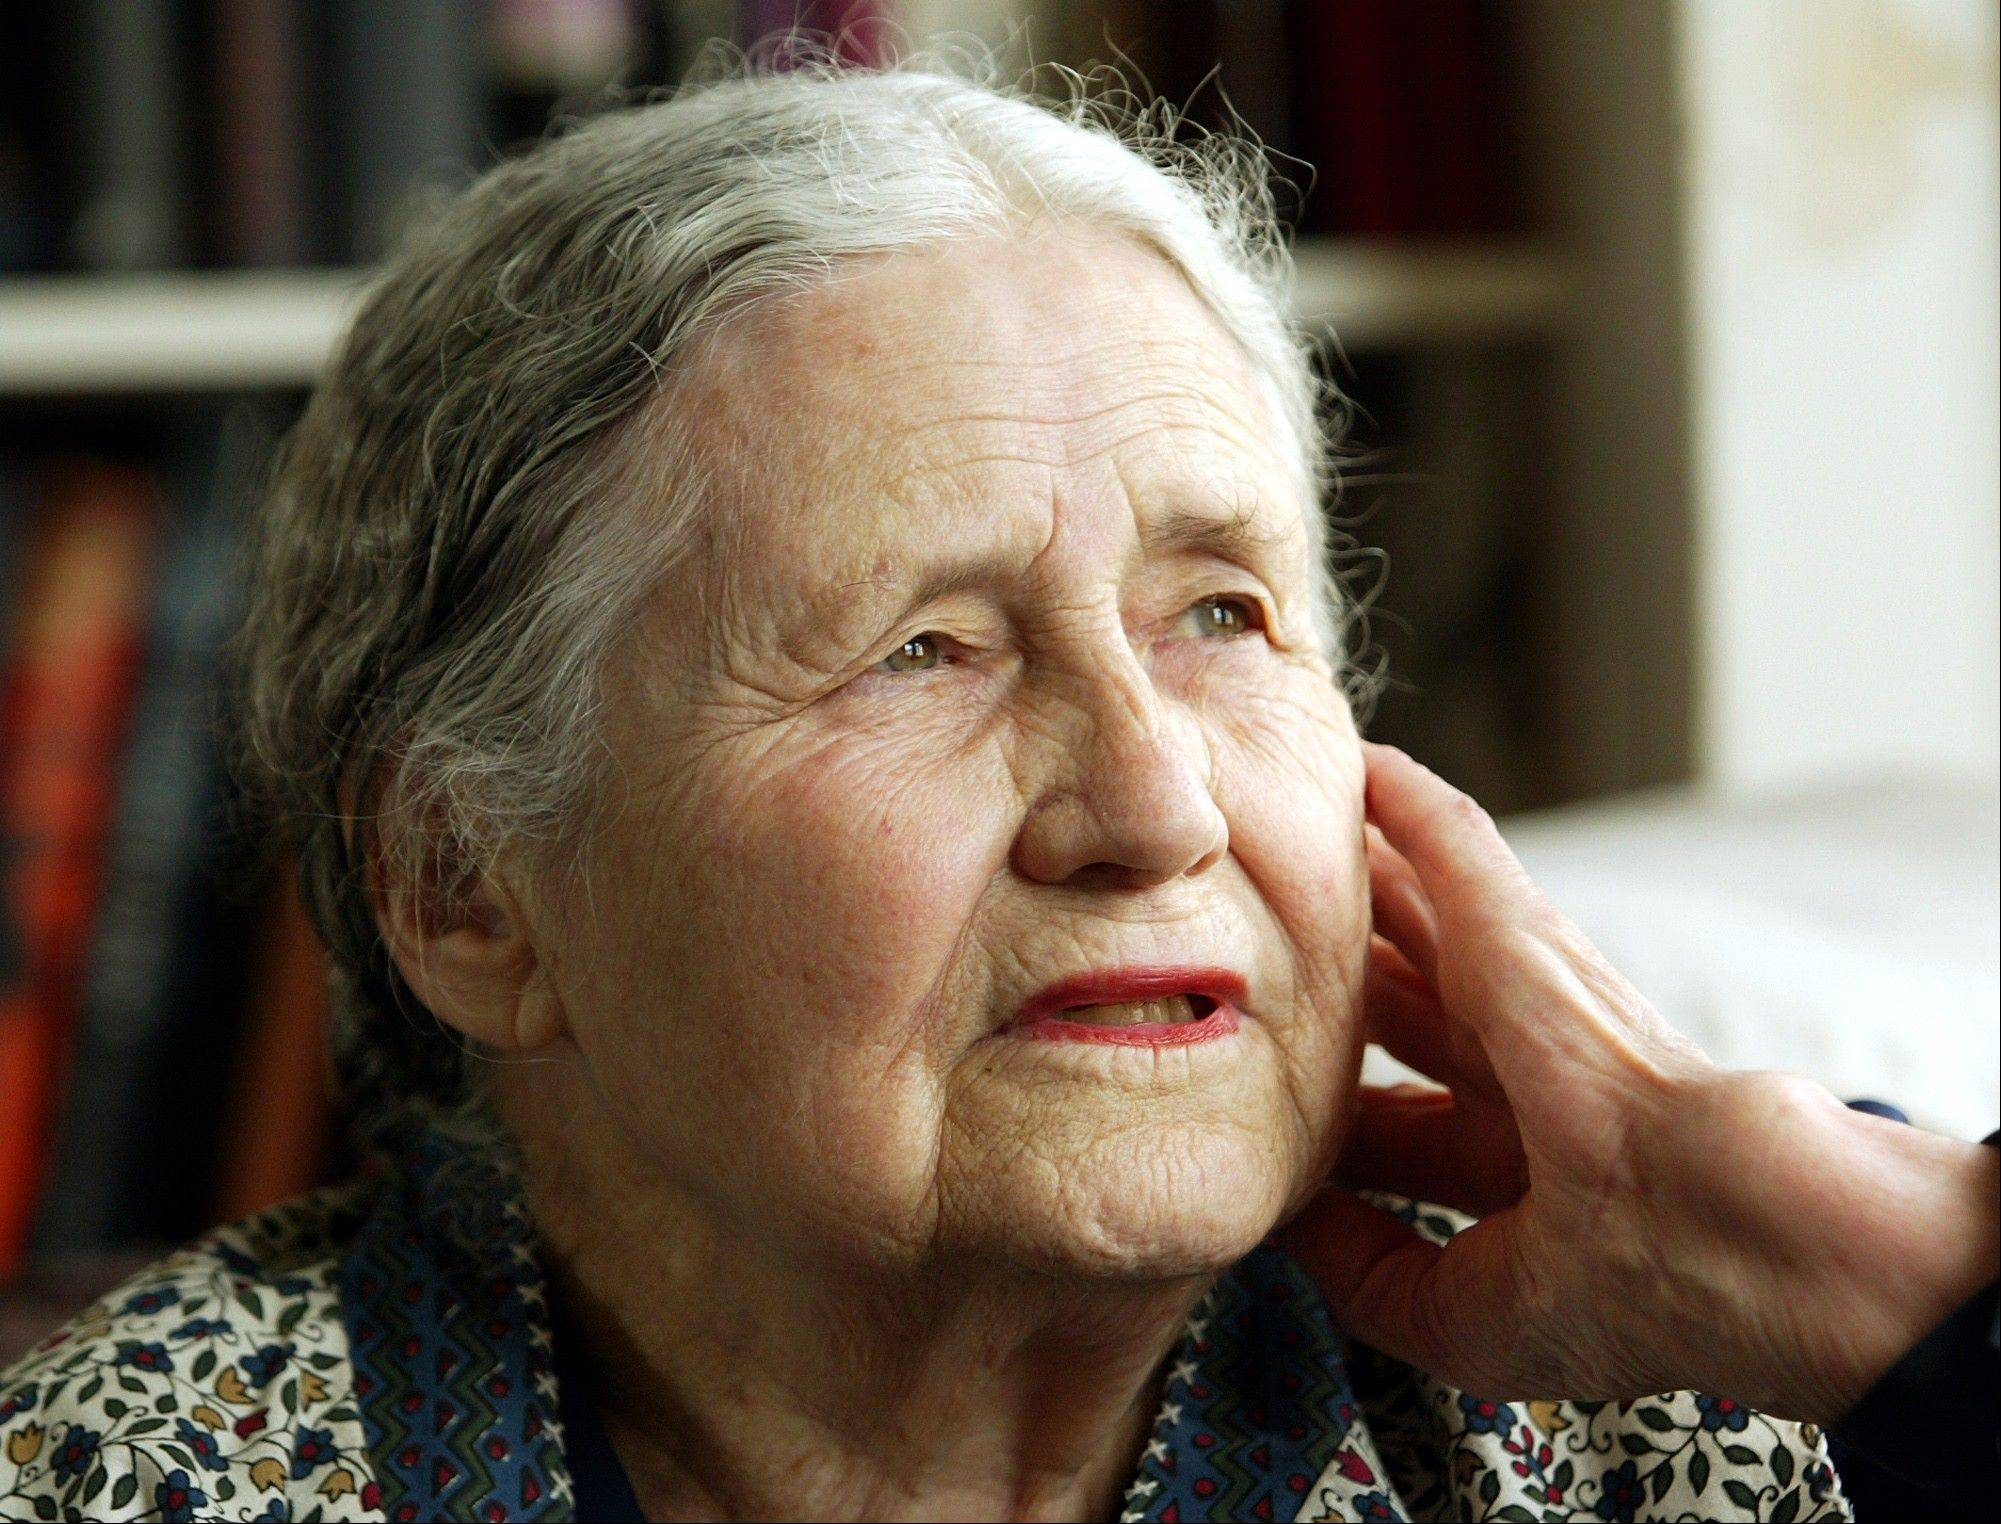 In this April 17, 2006 file photo, Writer Doris Lessing, 86, sits in her home in north London. Doris Lessing, the free-thinking, world-traveling, often-polarizing writer of �The Golden Notebook� and dozens of other novels that reflected her own improbable journey across the former British empire, has died, early Sunday, Nov. 17, 2013. She was 94. The author of more than 50 works of fiction, nonfiction and poetry, Lessing explored topics ranging from colonial Africa to dystopian Britain, from the mystery of being female to the unknown worlds of science fiction.